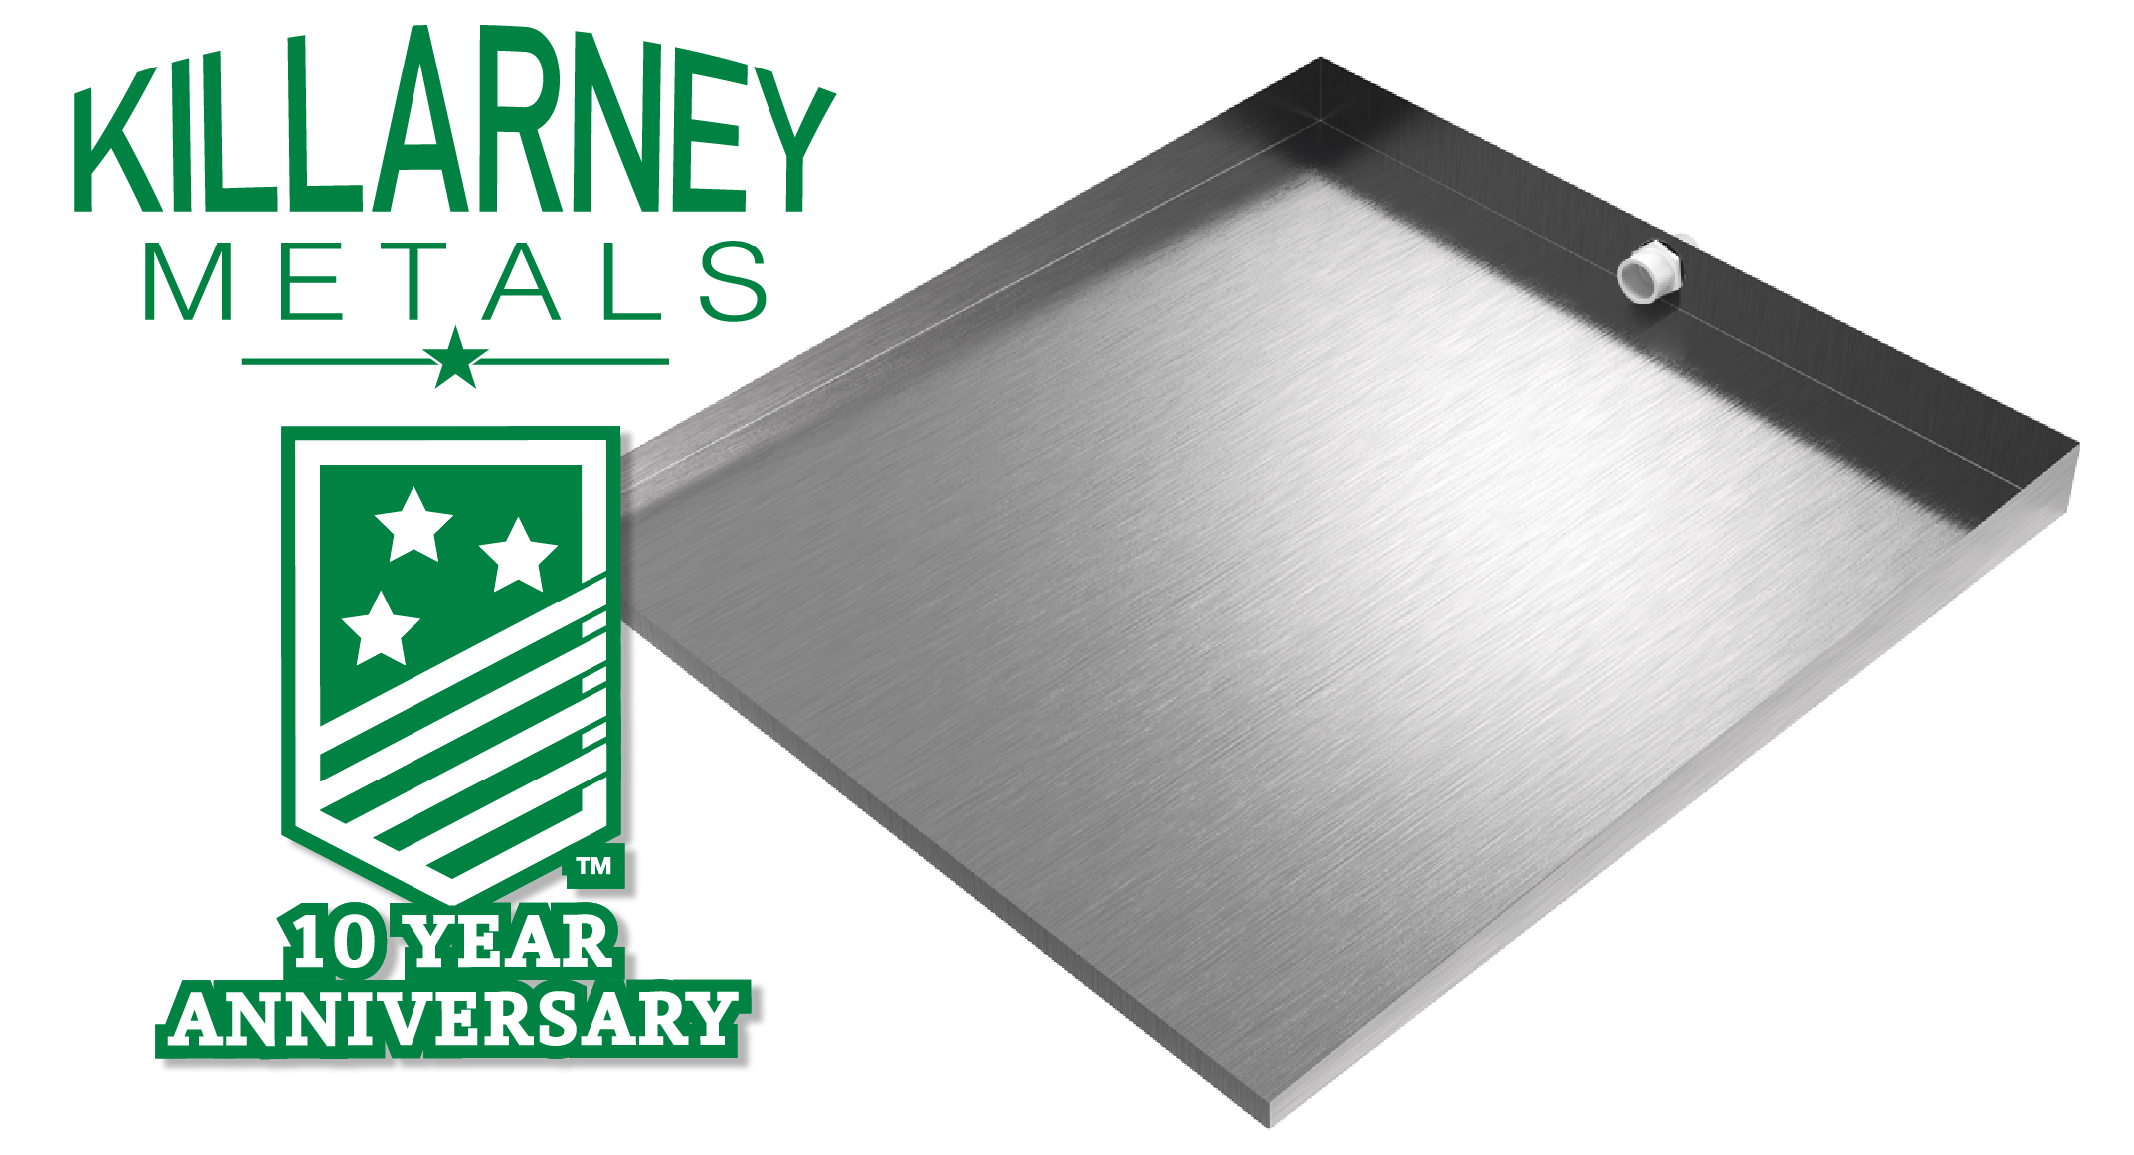 Stainless Steel Front Load Washer Drain Pan   Killarney Metals